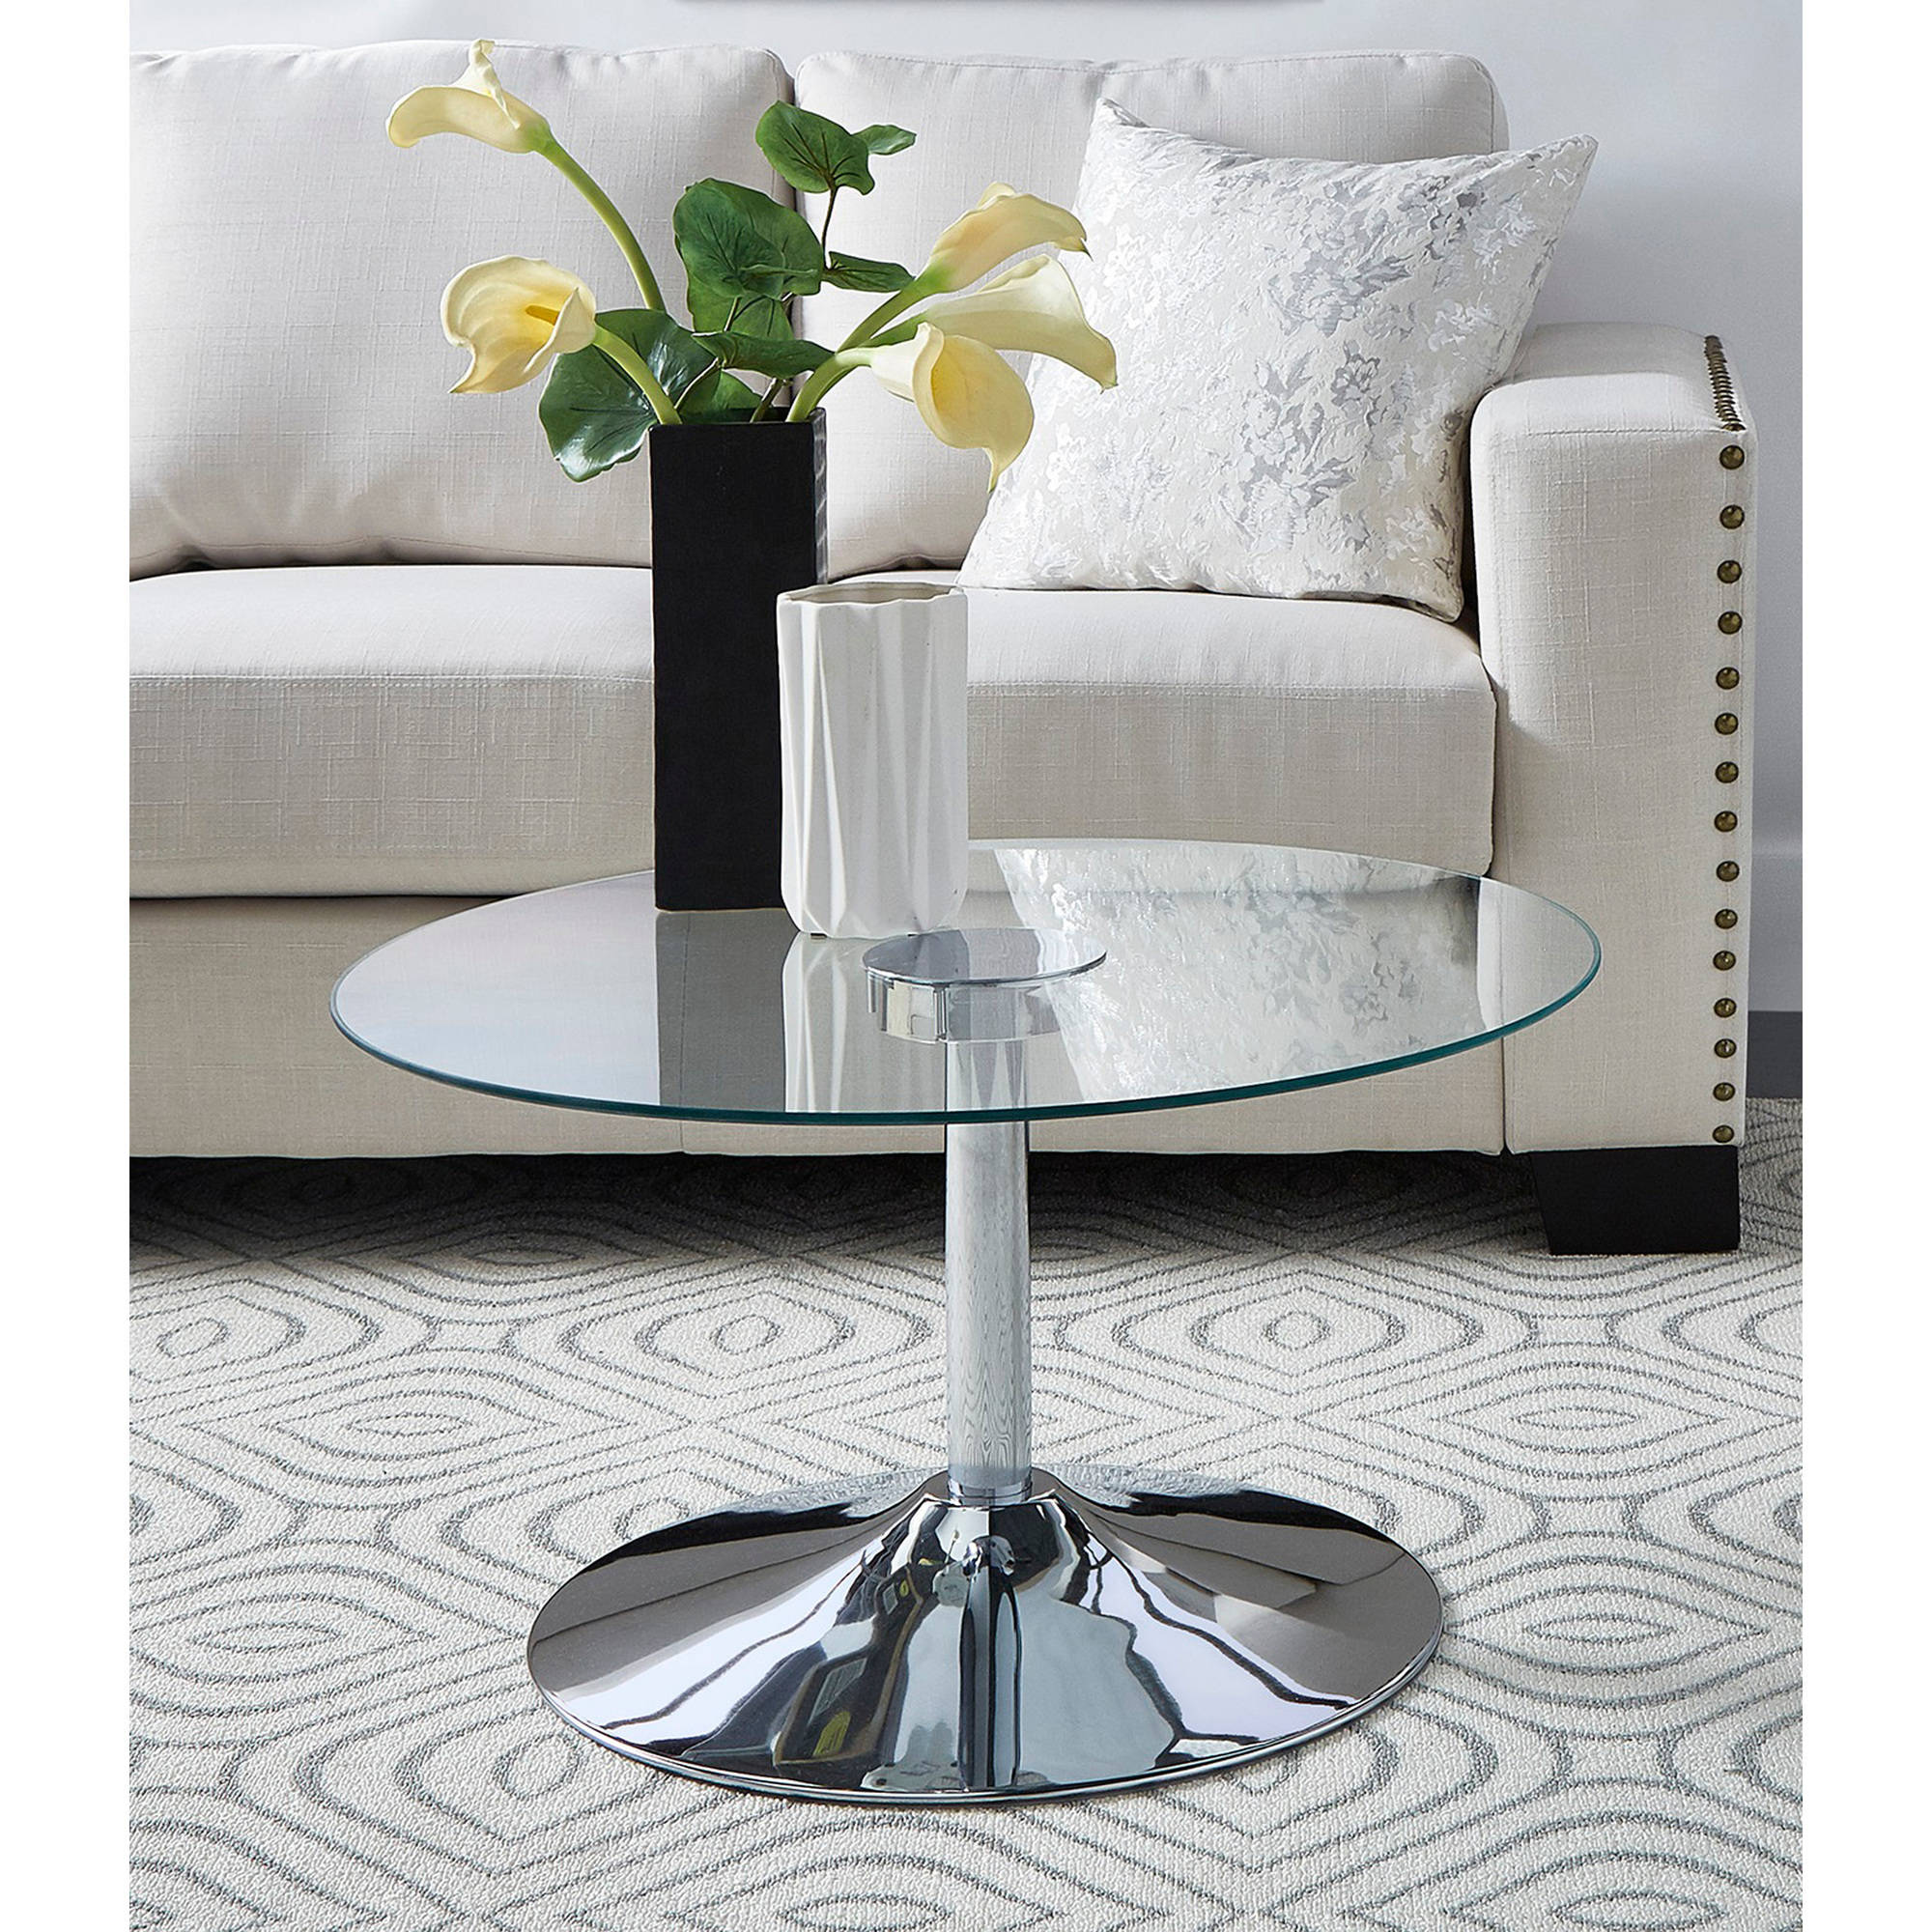 Chelsea Lane Ivo LED Cocktail Table, Metal and Chrome by Weston Home